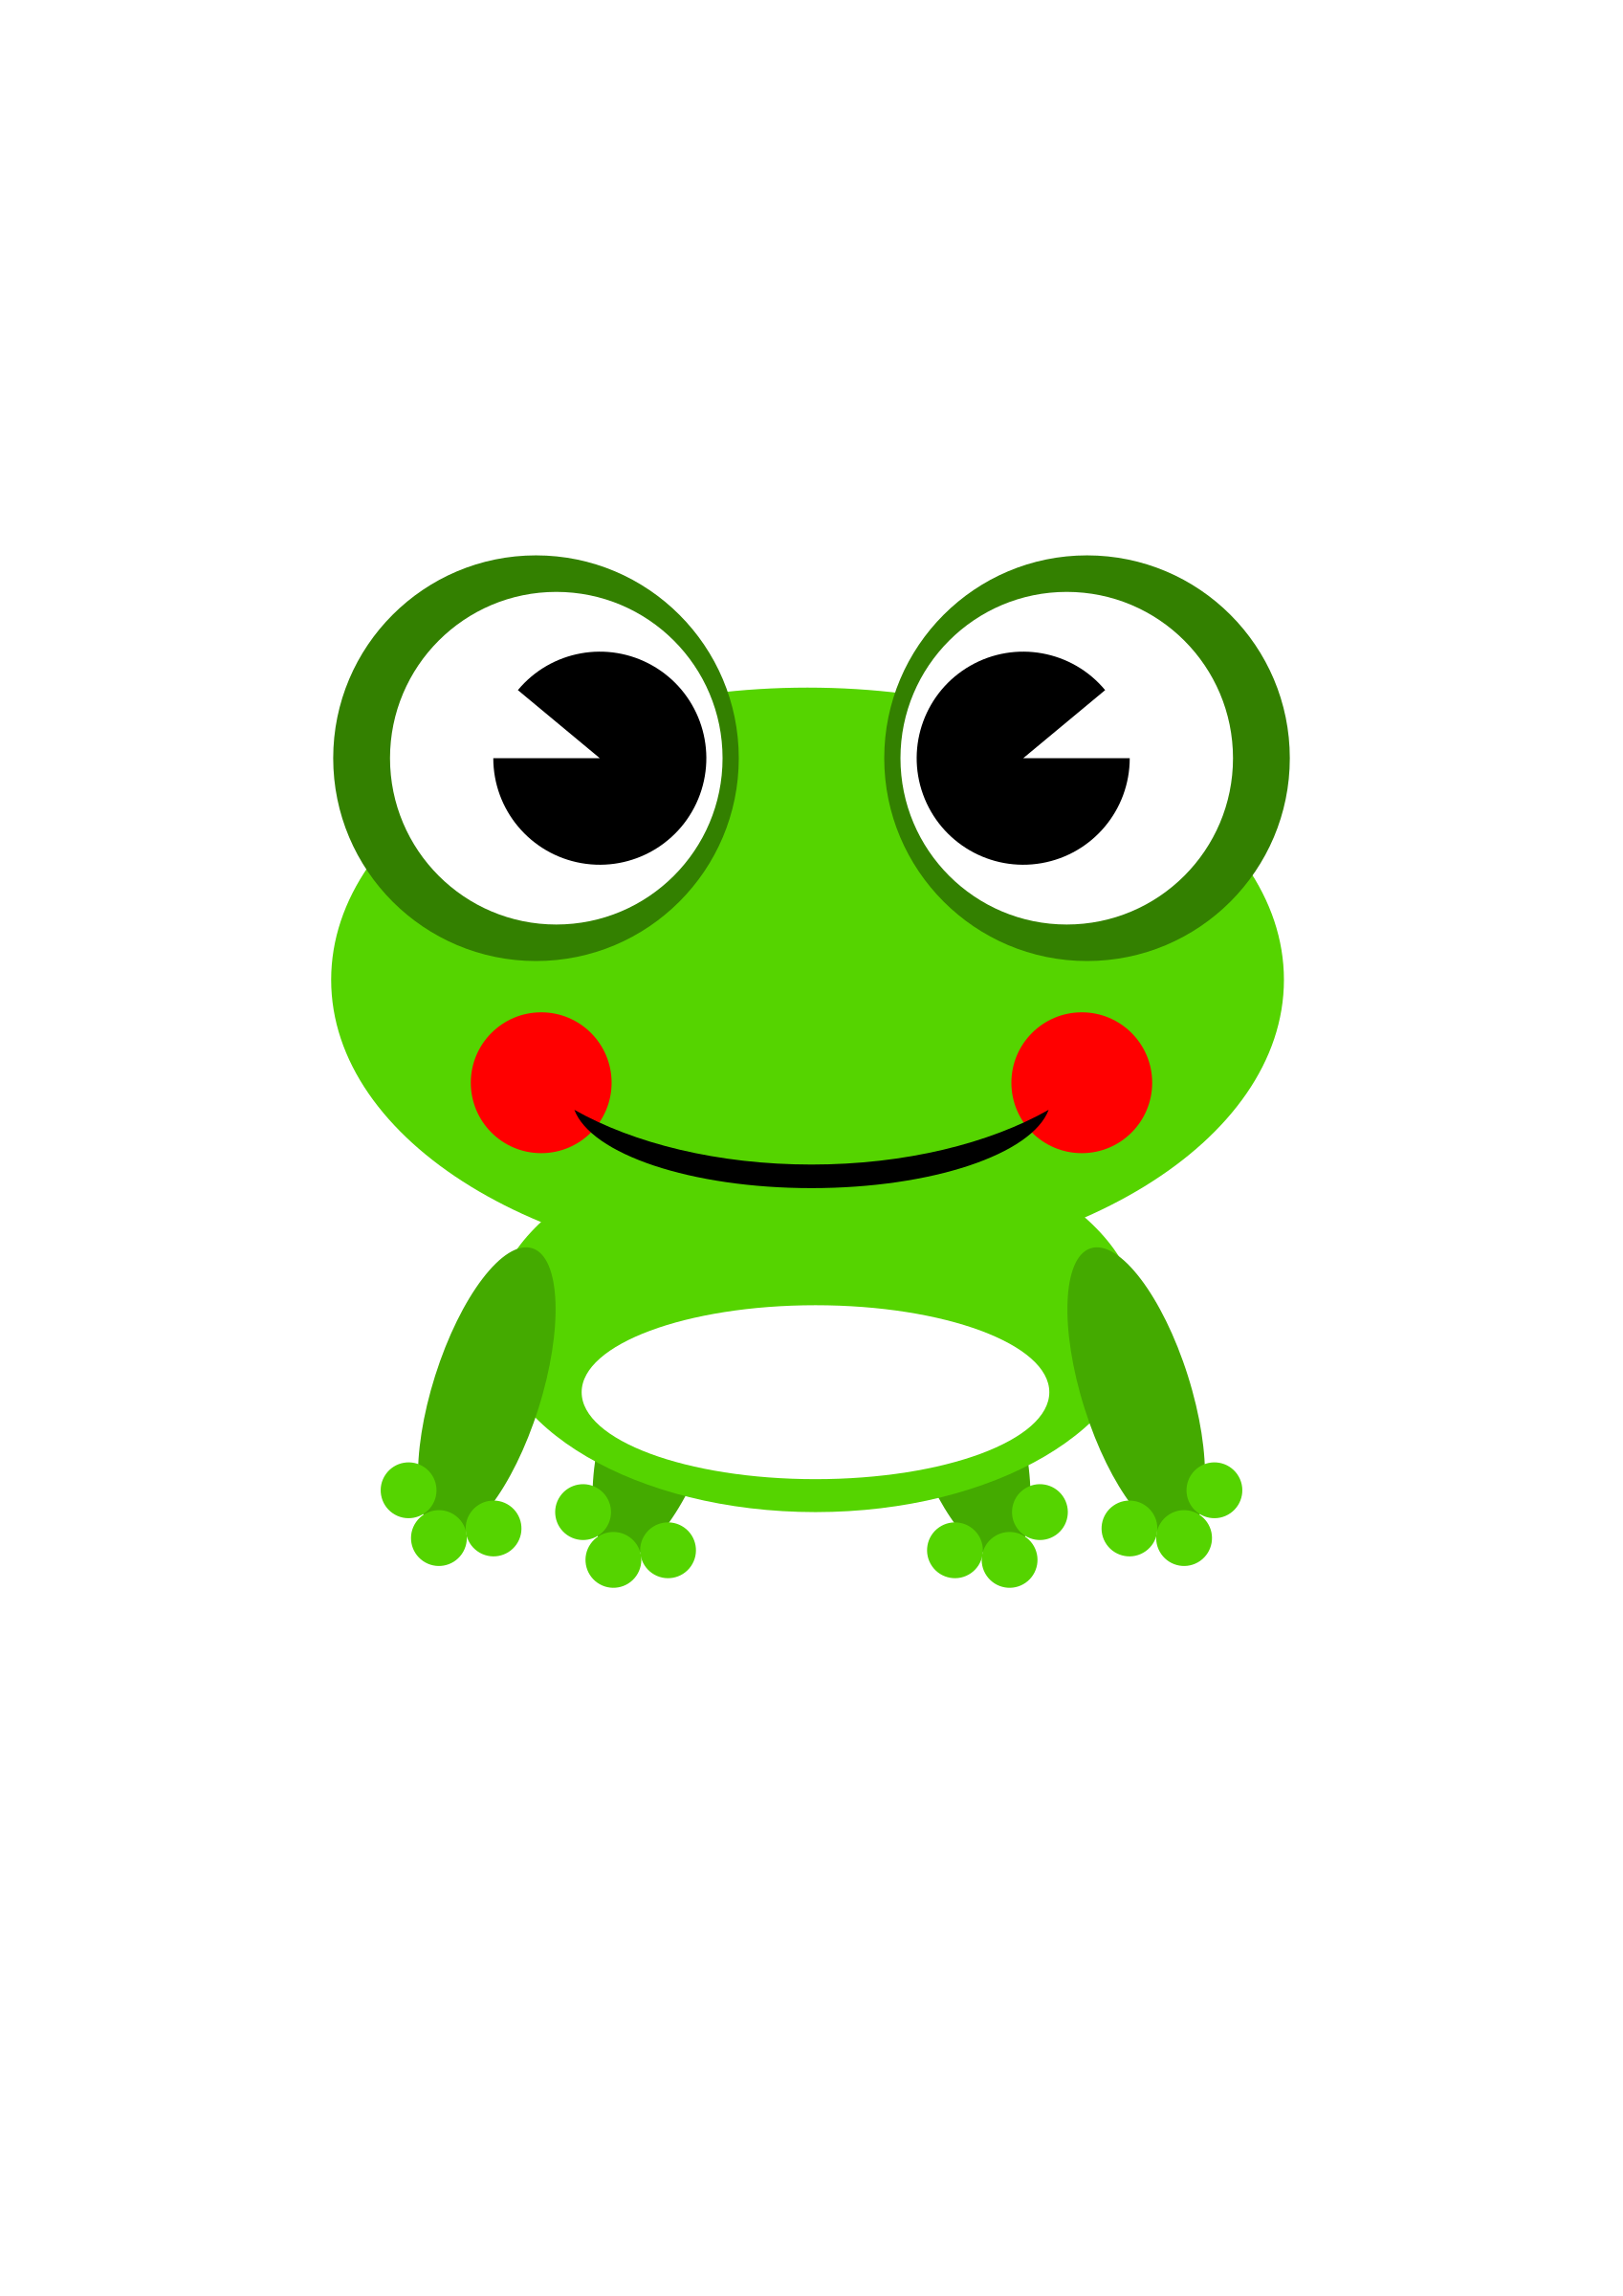 frog-by Ramy by BigFrog2010